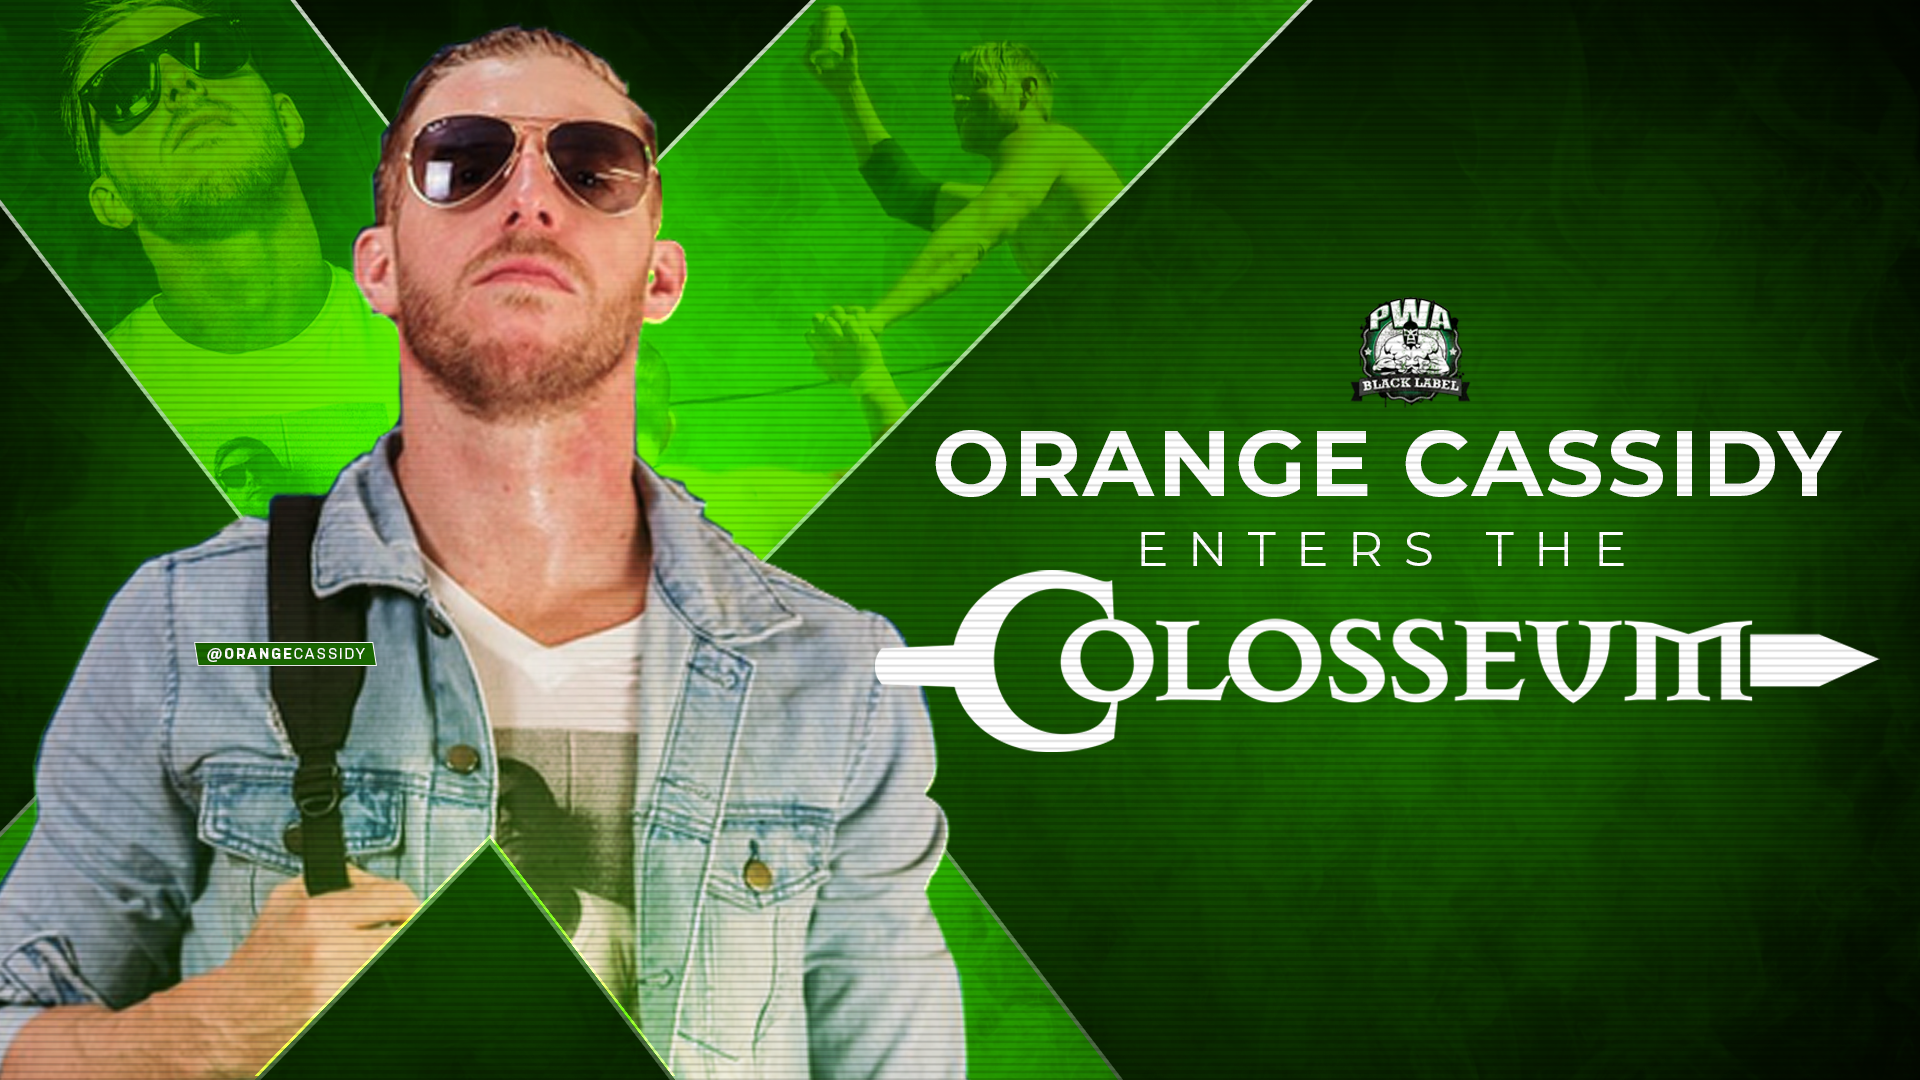 PWA - Colosseum - Orange Cassidy Entrant Image.png